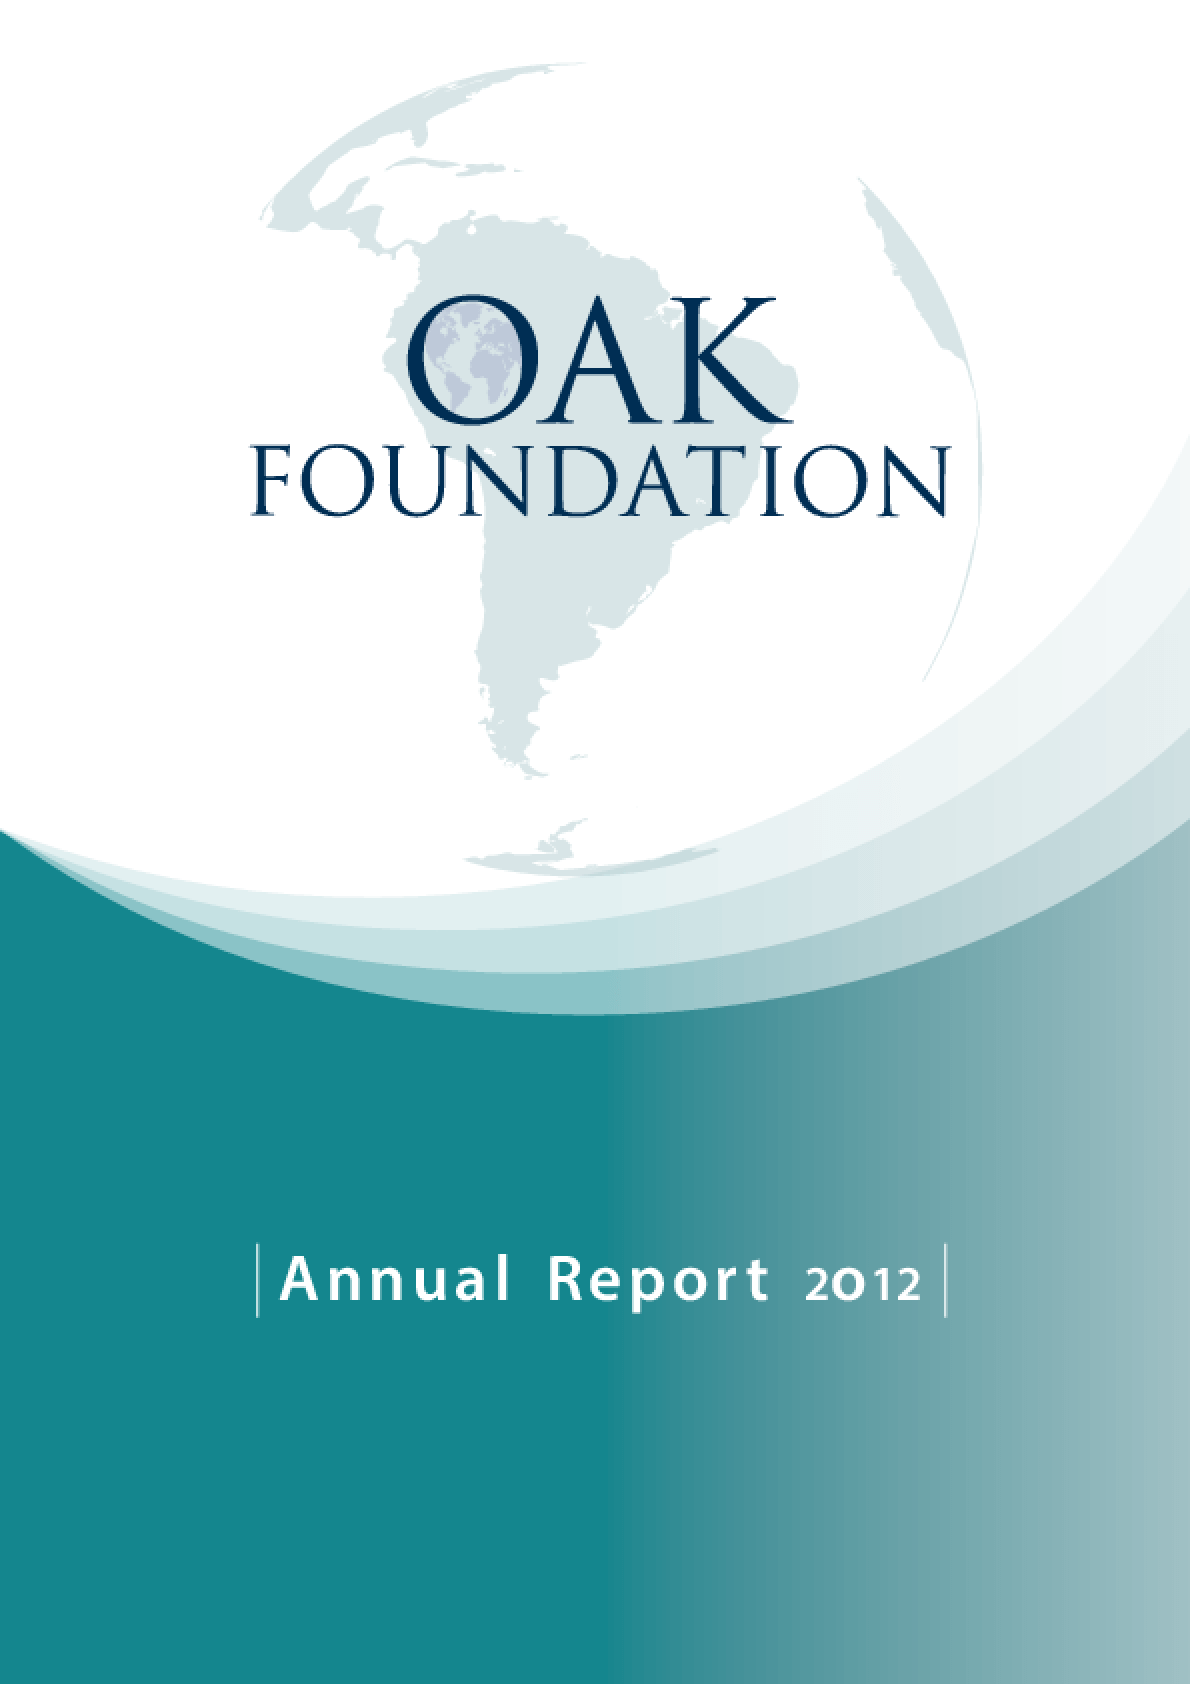 Oak Foundation Annual Report 2012